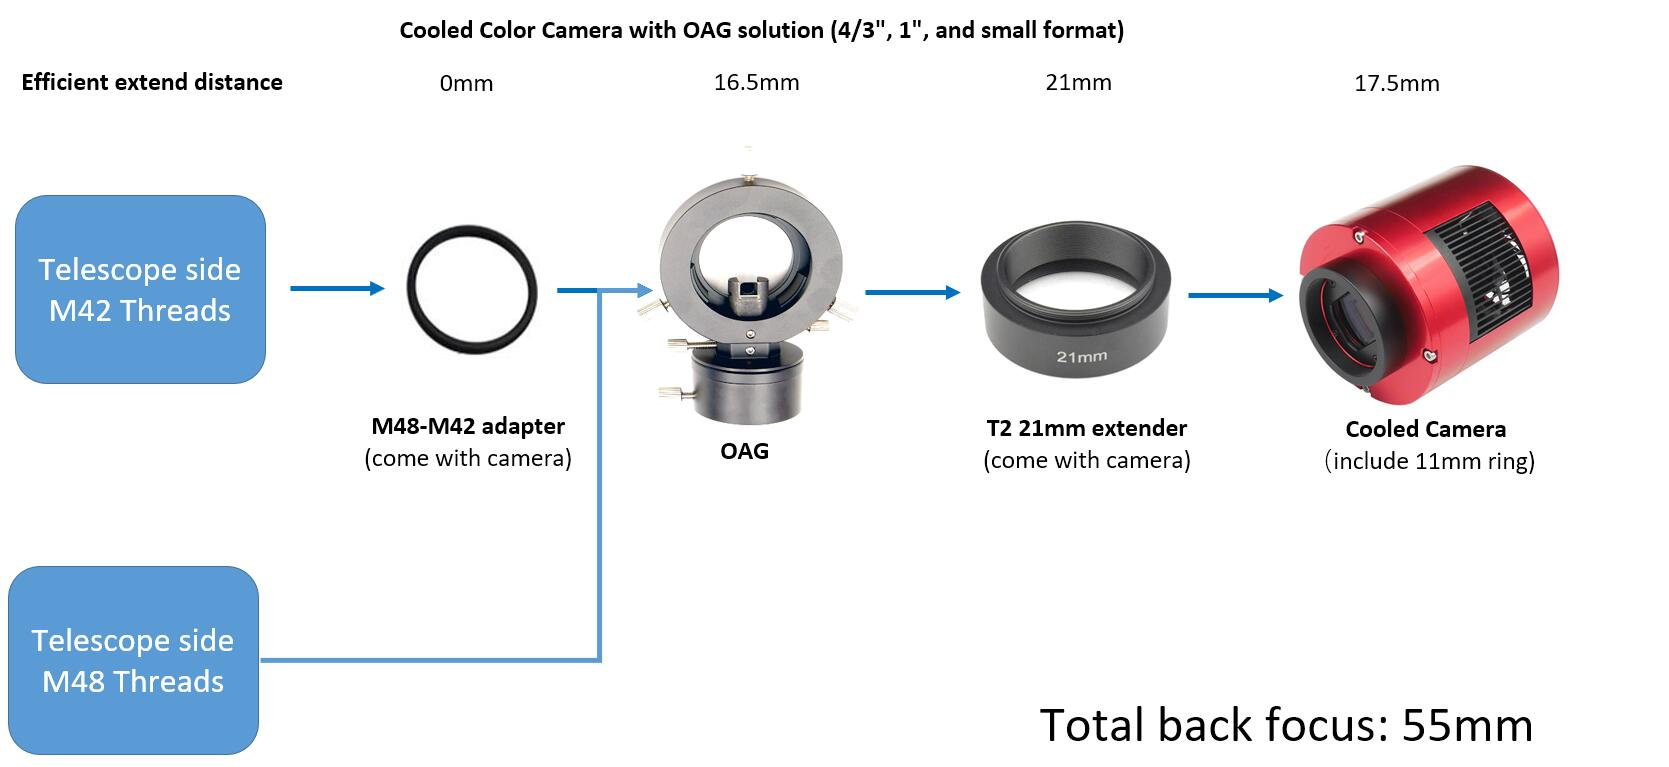 Cooled Color Camera with OAG solution